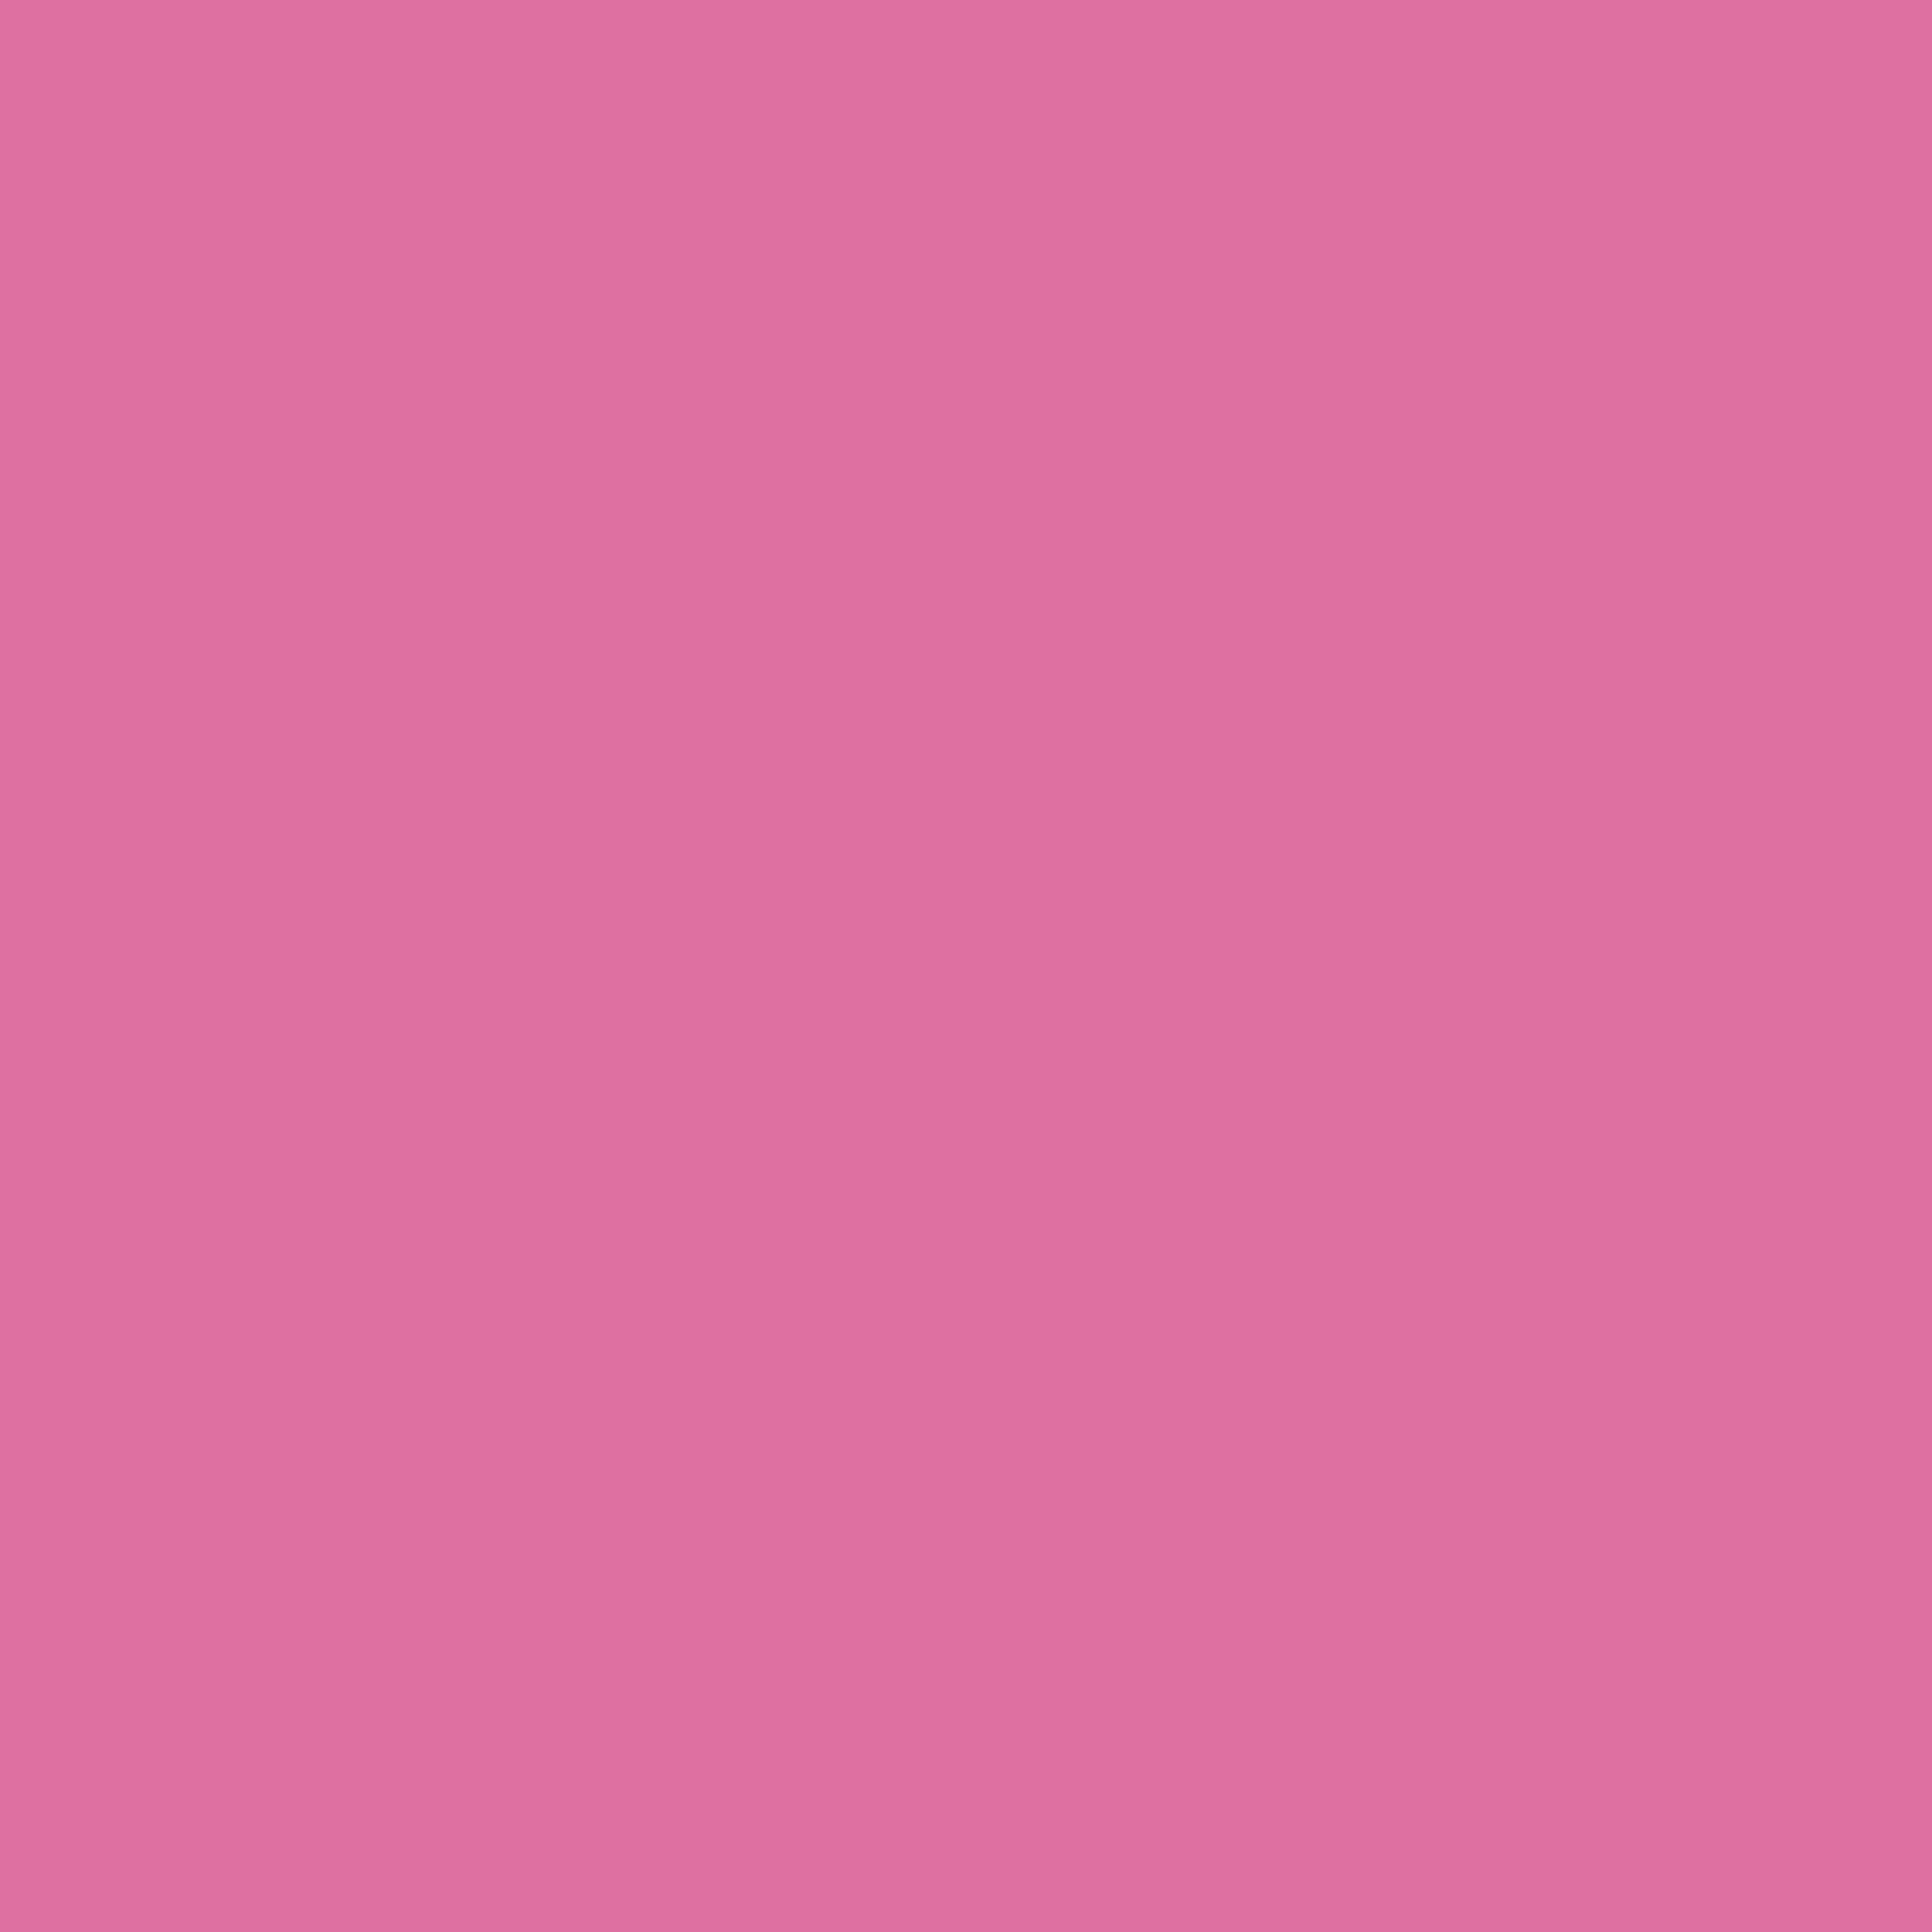 2732x2732 China Pink Solid Color Background